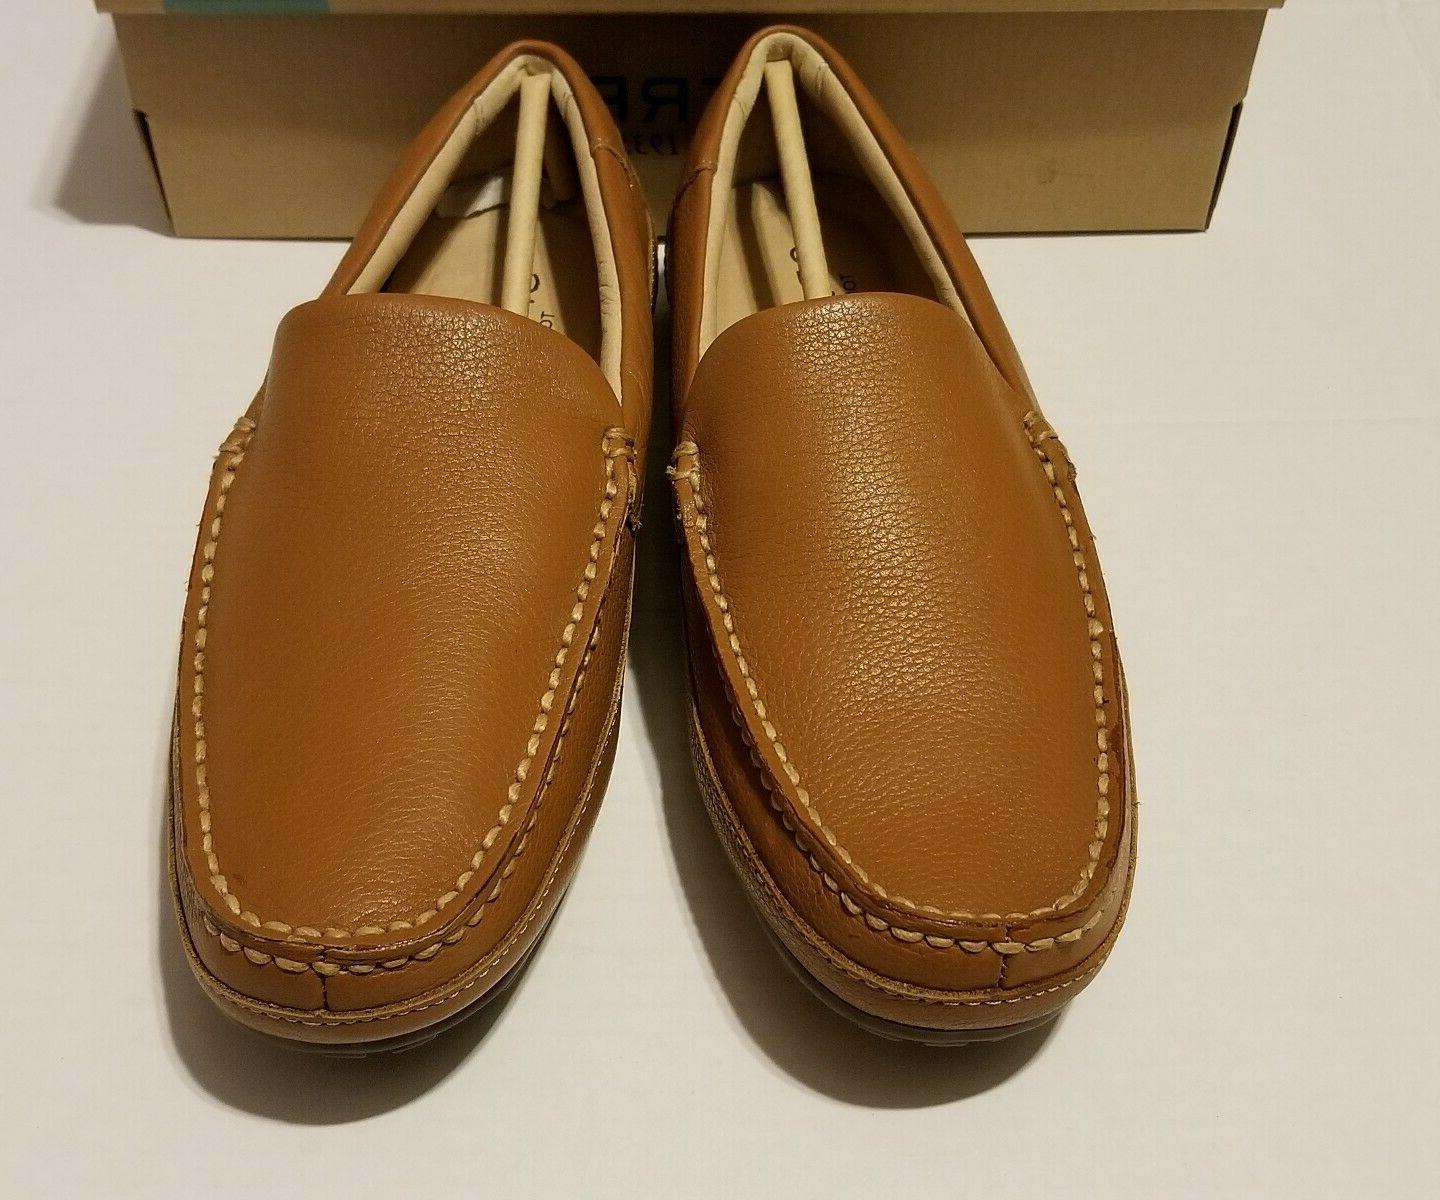 Sperry Top-Sider Hampden Sahara Sizes